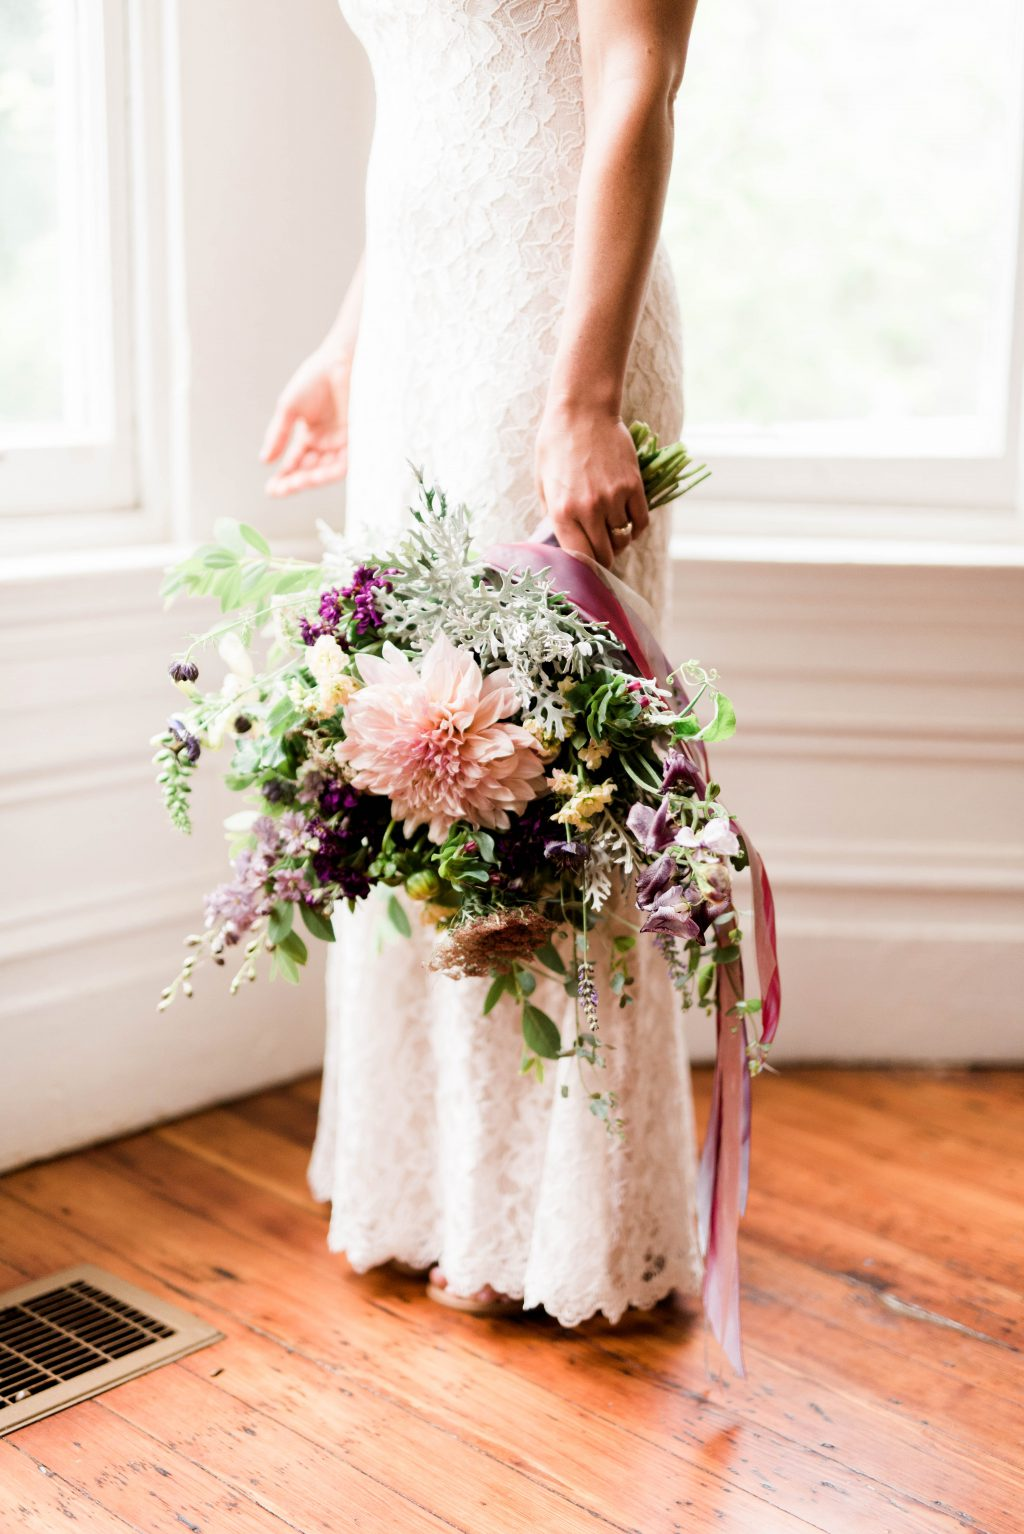 awbury-arboretum-wedding-DIY-boho-summer-haley-richter-photography-048